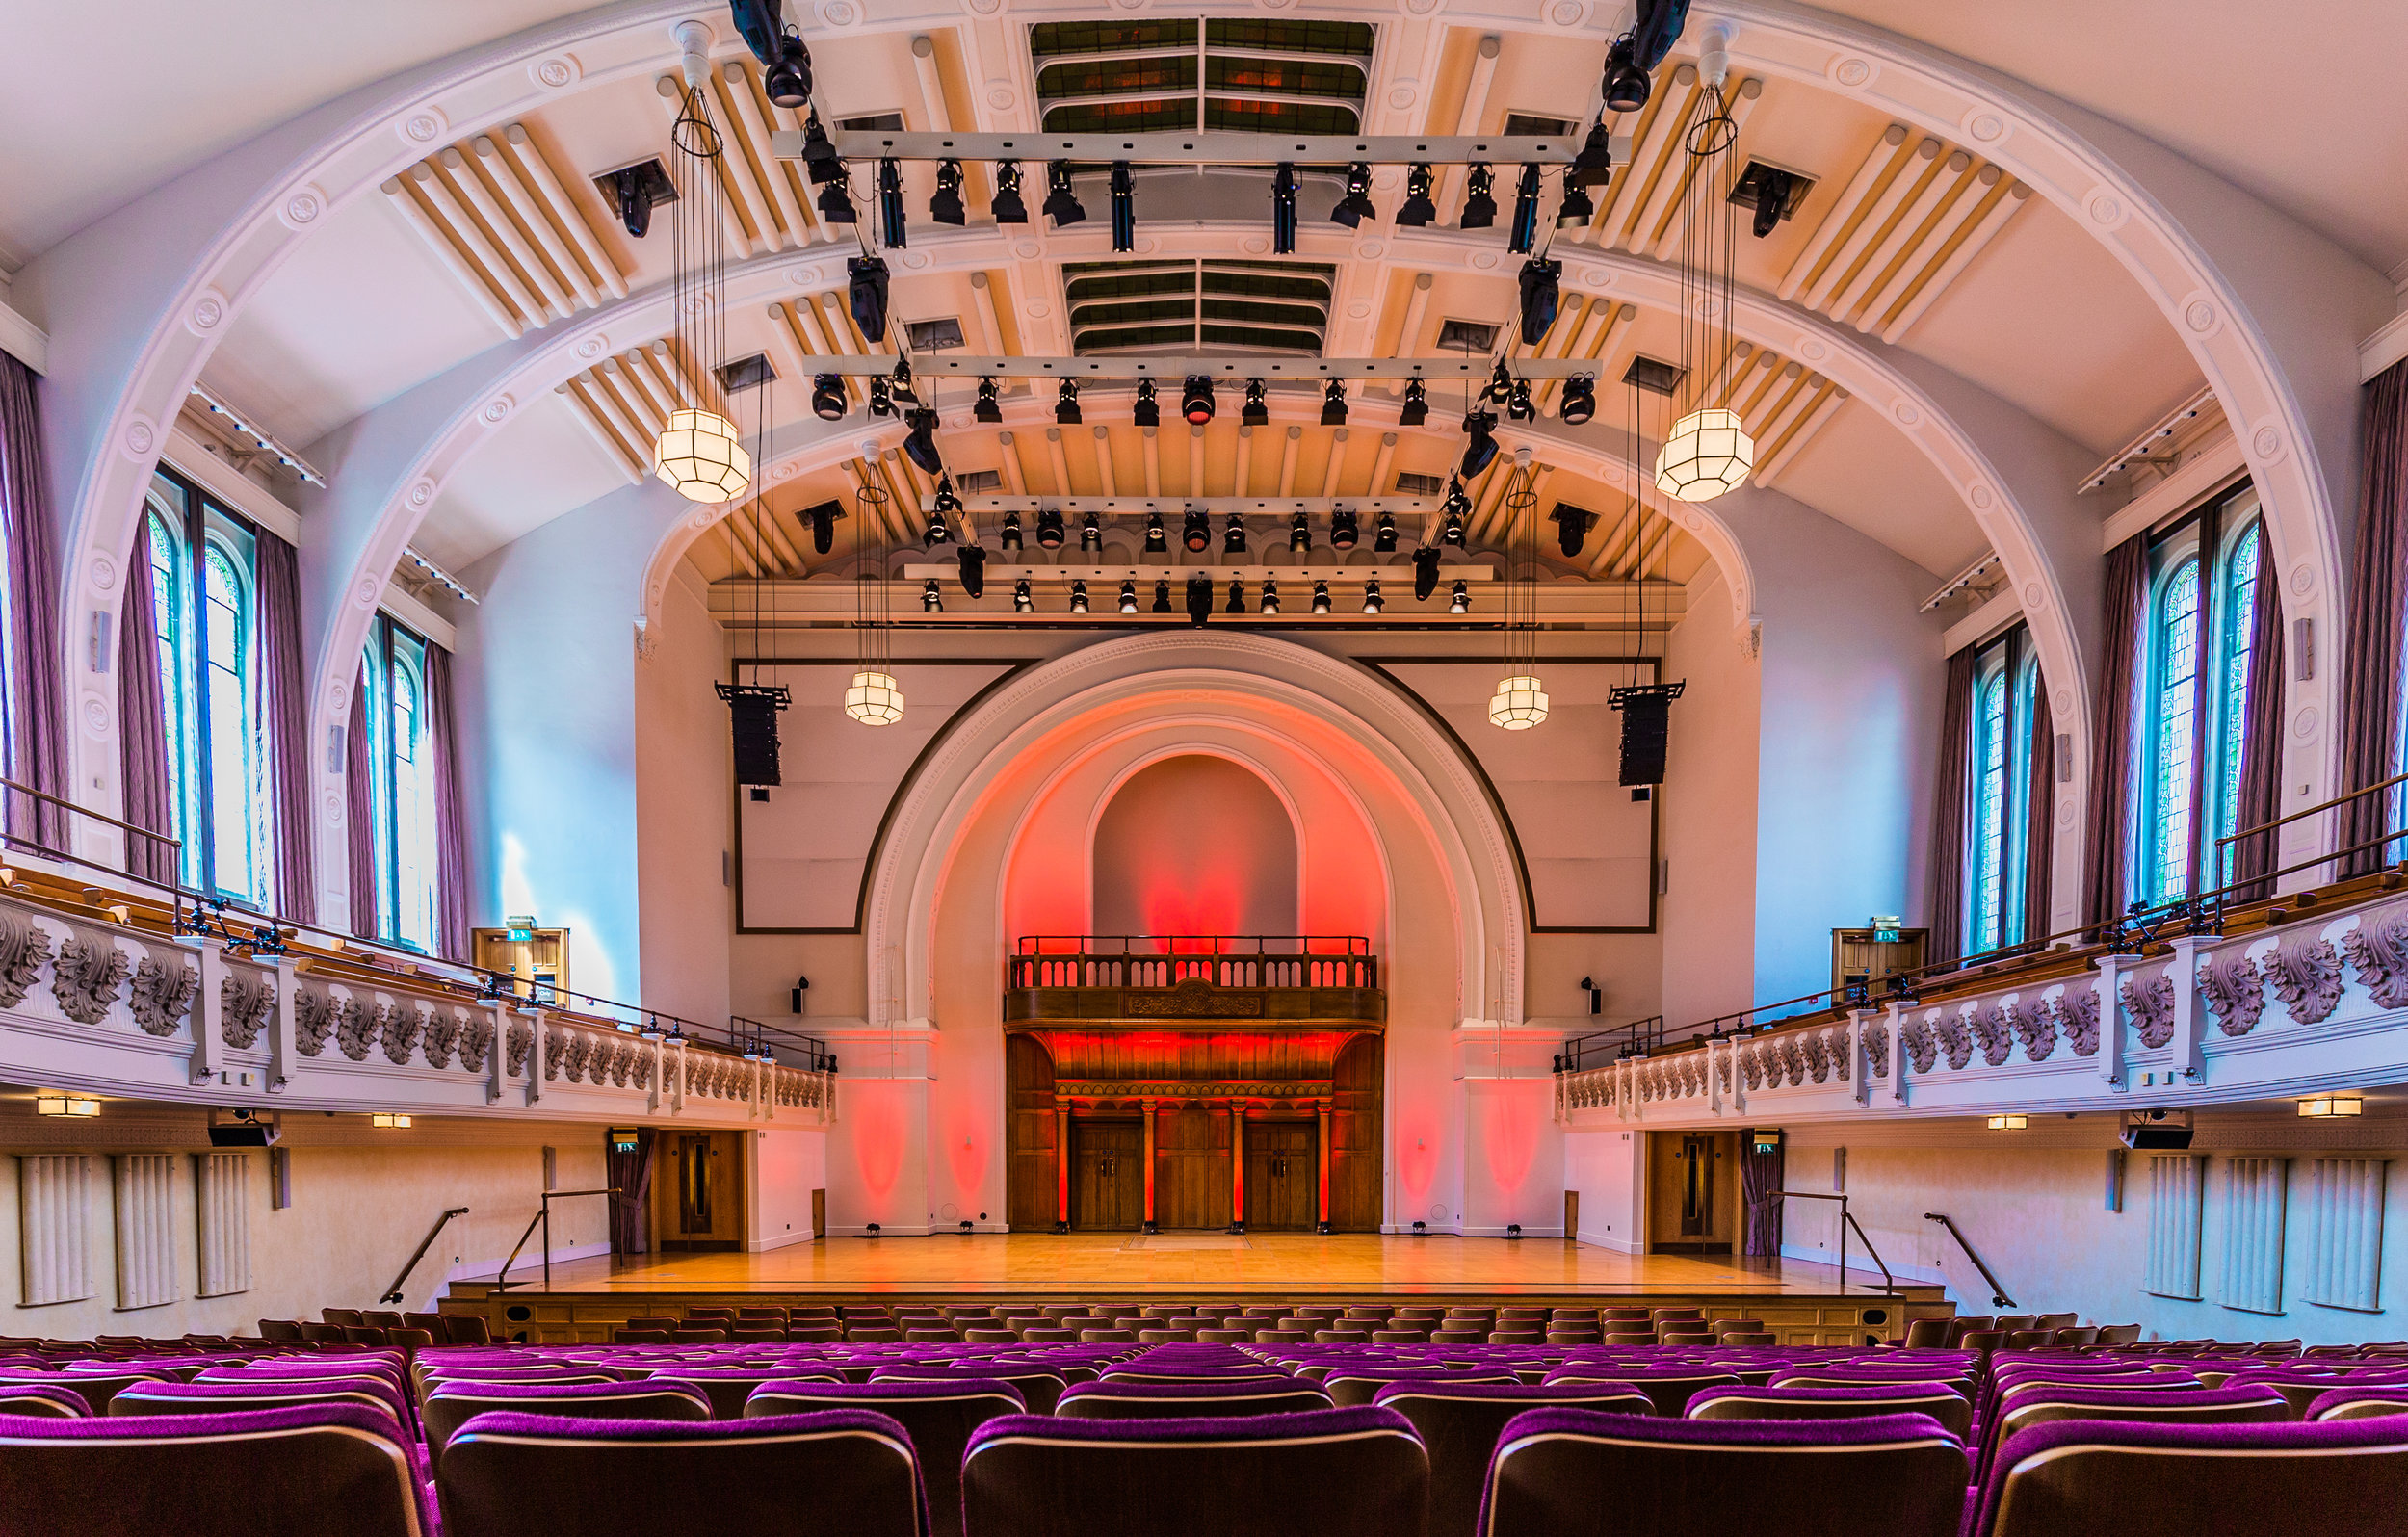 cadogan-hall-auditorium_37673465525_o.jpg